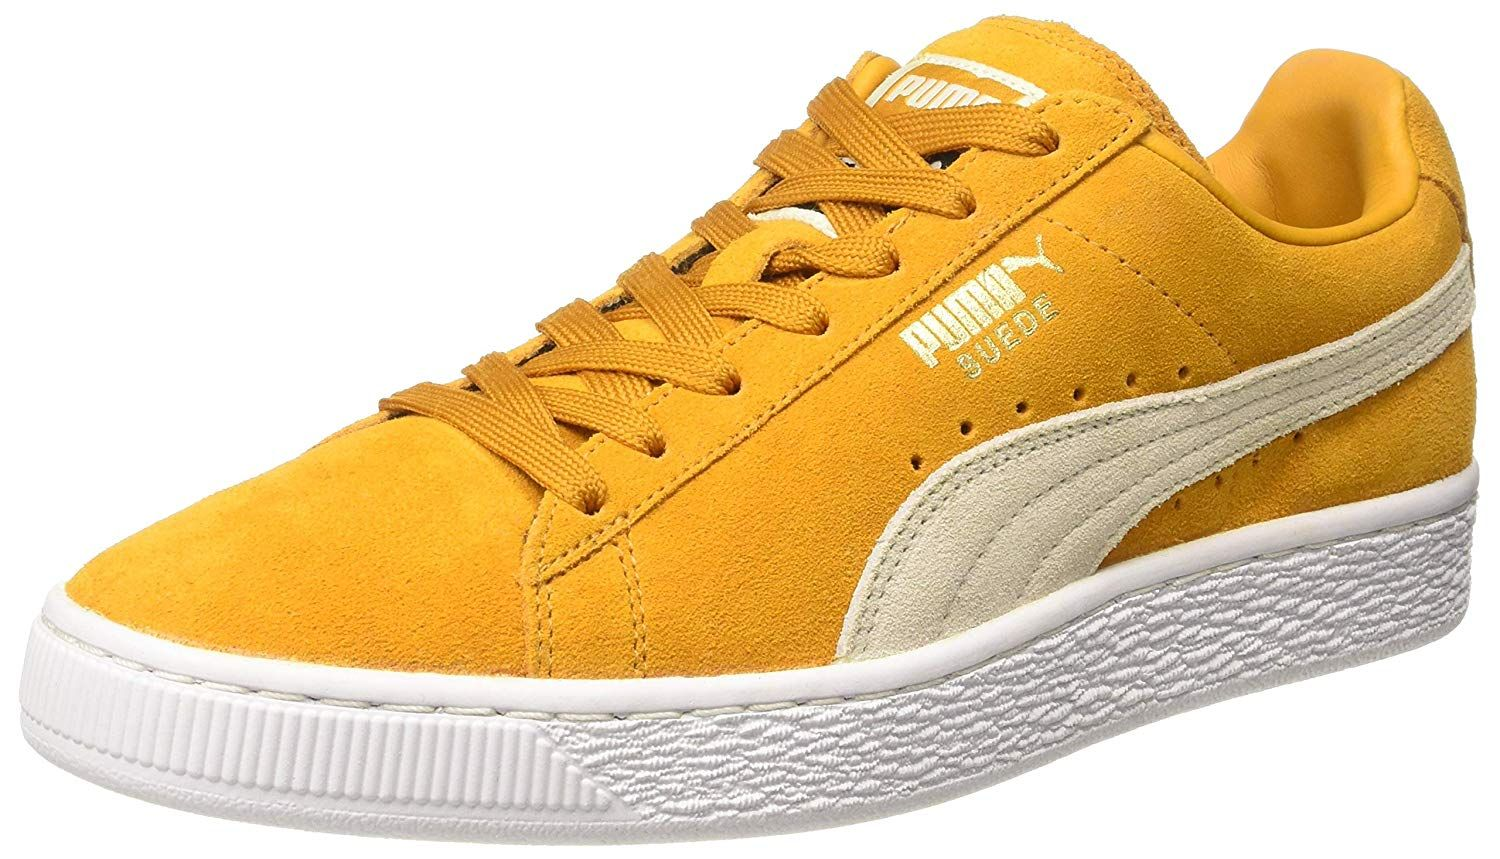 sneakers | Unisex sneakers, Pumas shoes, Puma